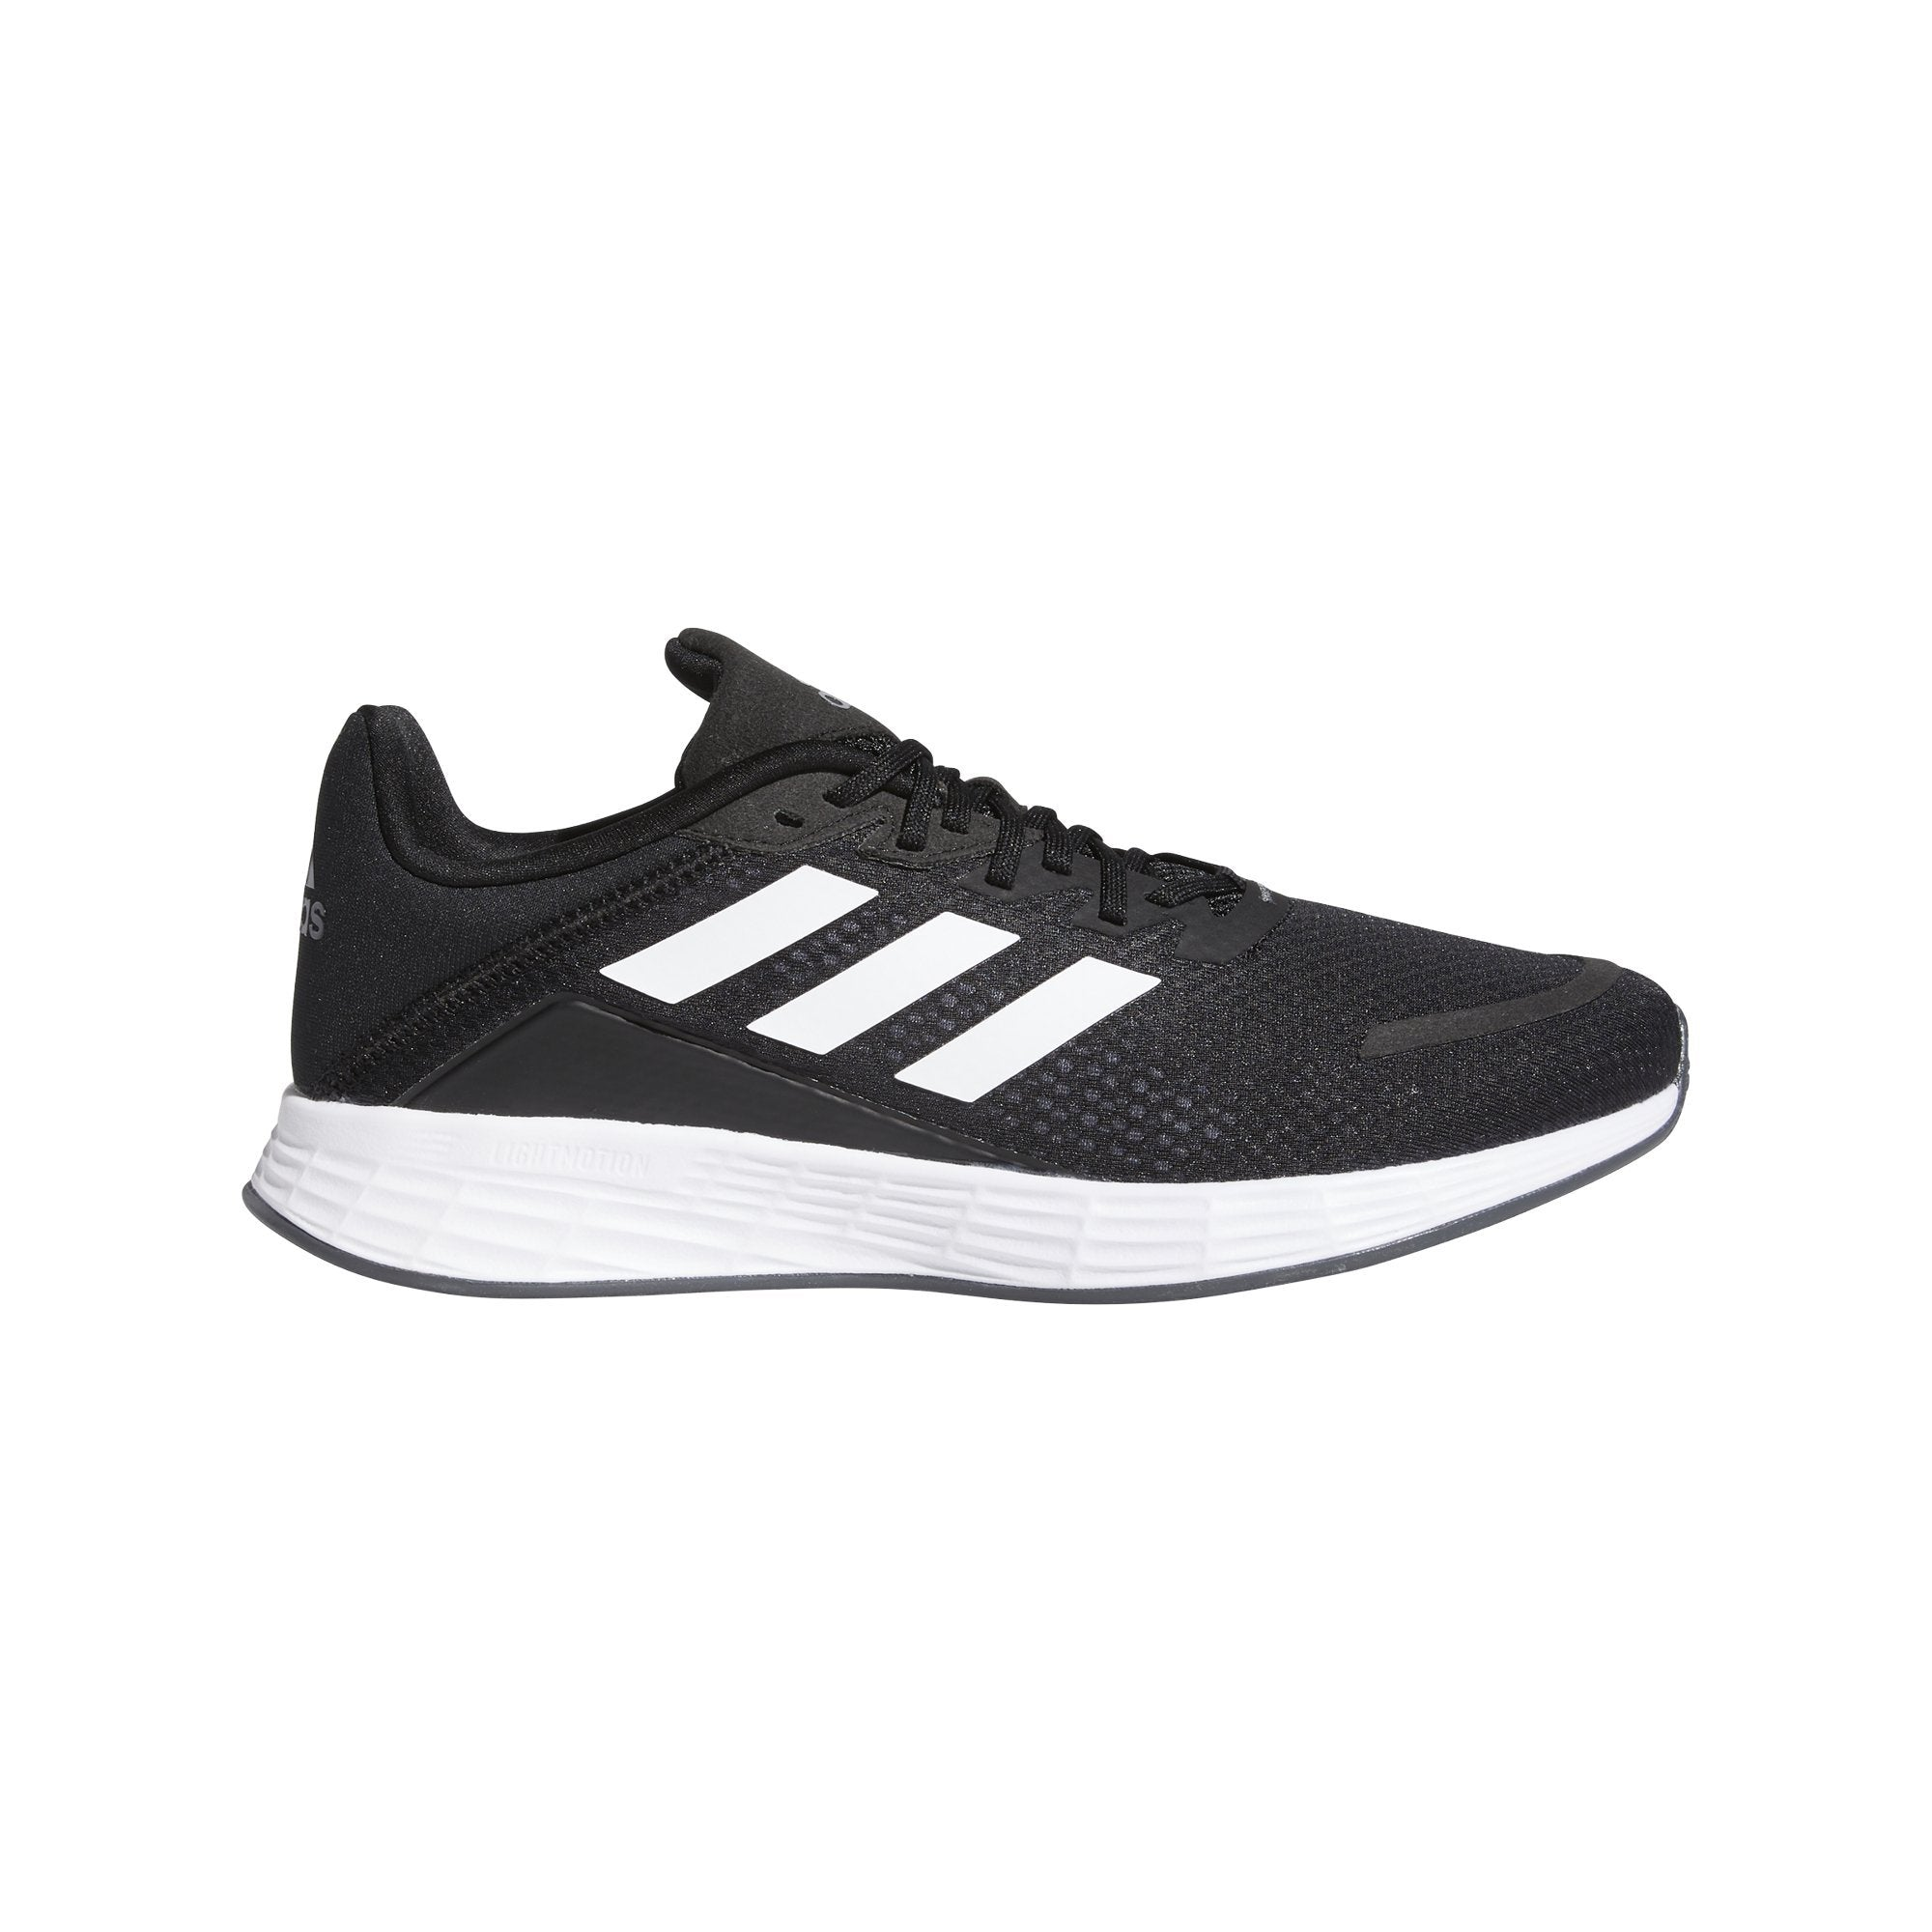 Adidas Mens Duramo SL Shoes - Core Black/Ftwr White/Grey Six SP-Footwear-Mens Adidas